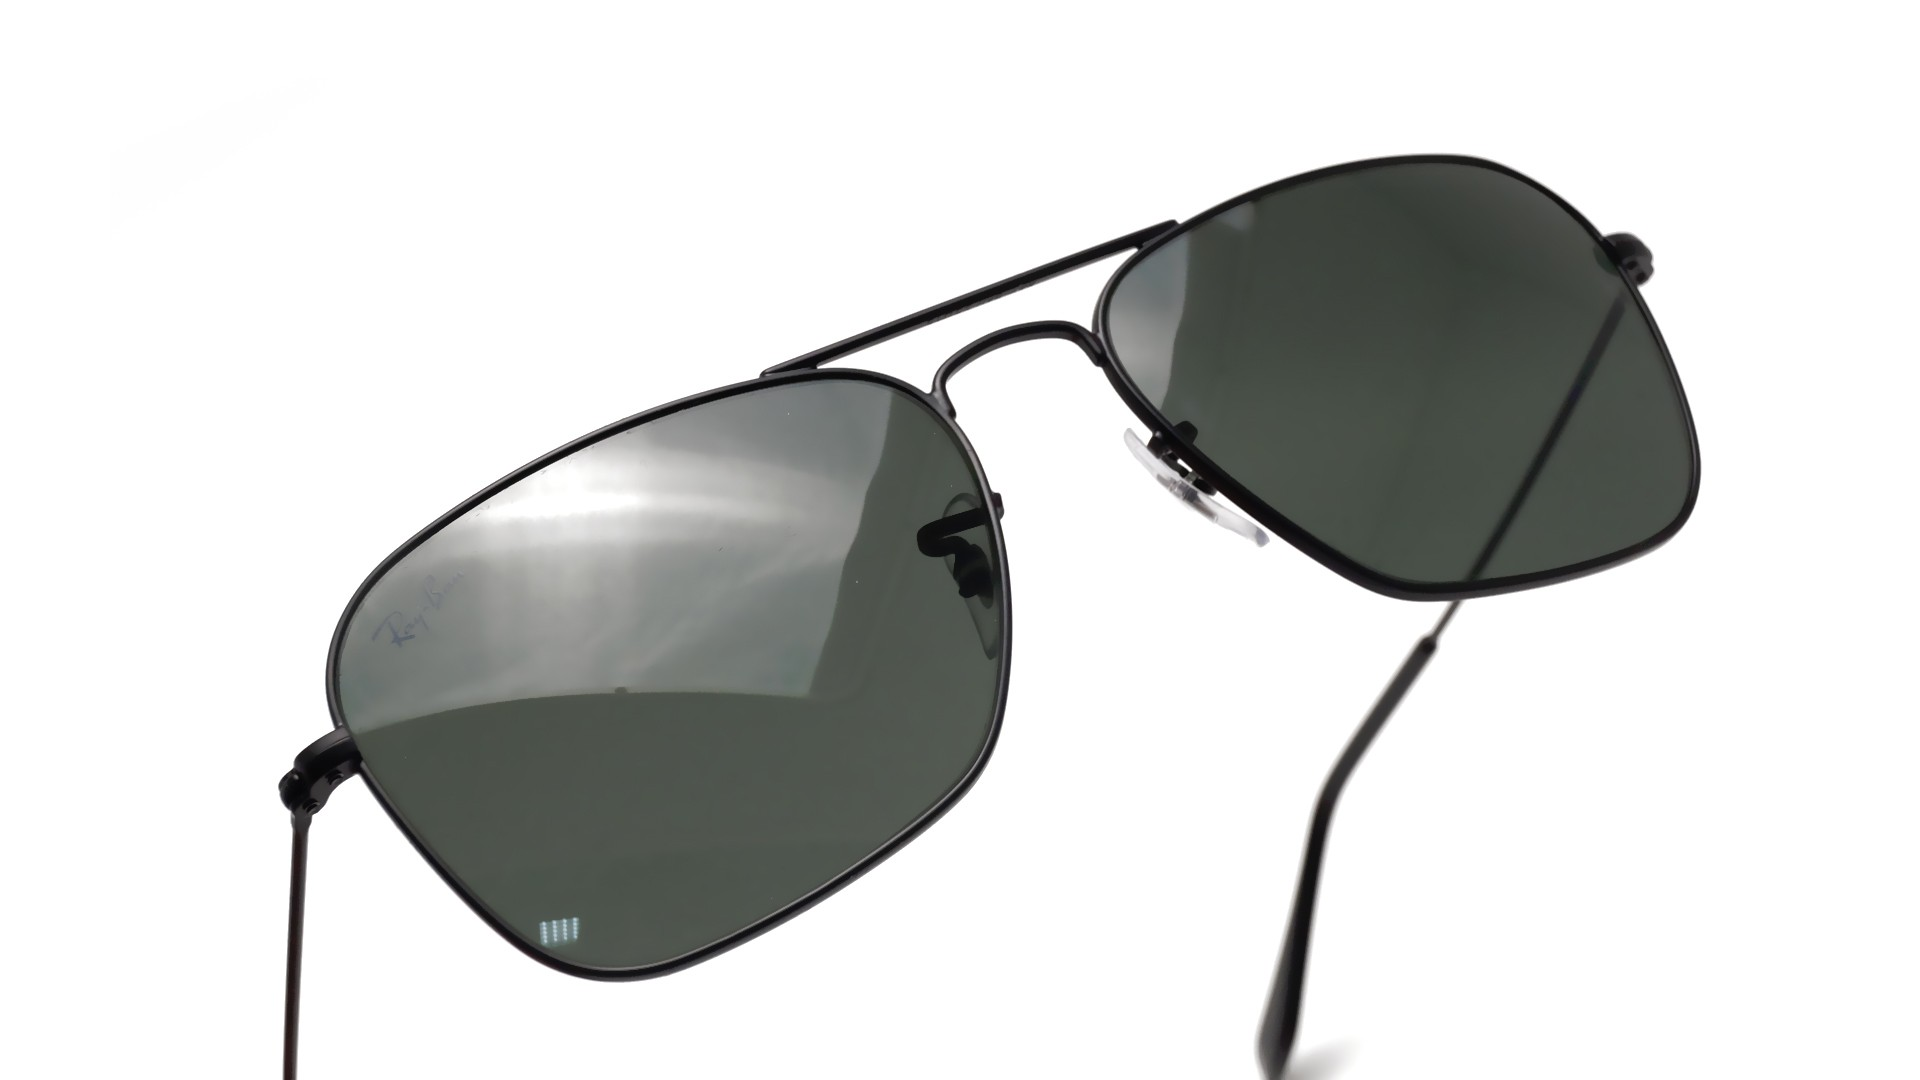 7a0871e253c Sunglasses Ray-Ban Caravan Black Matte G-15 RB3136 W3338 55-15 Medium